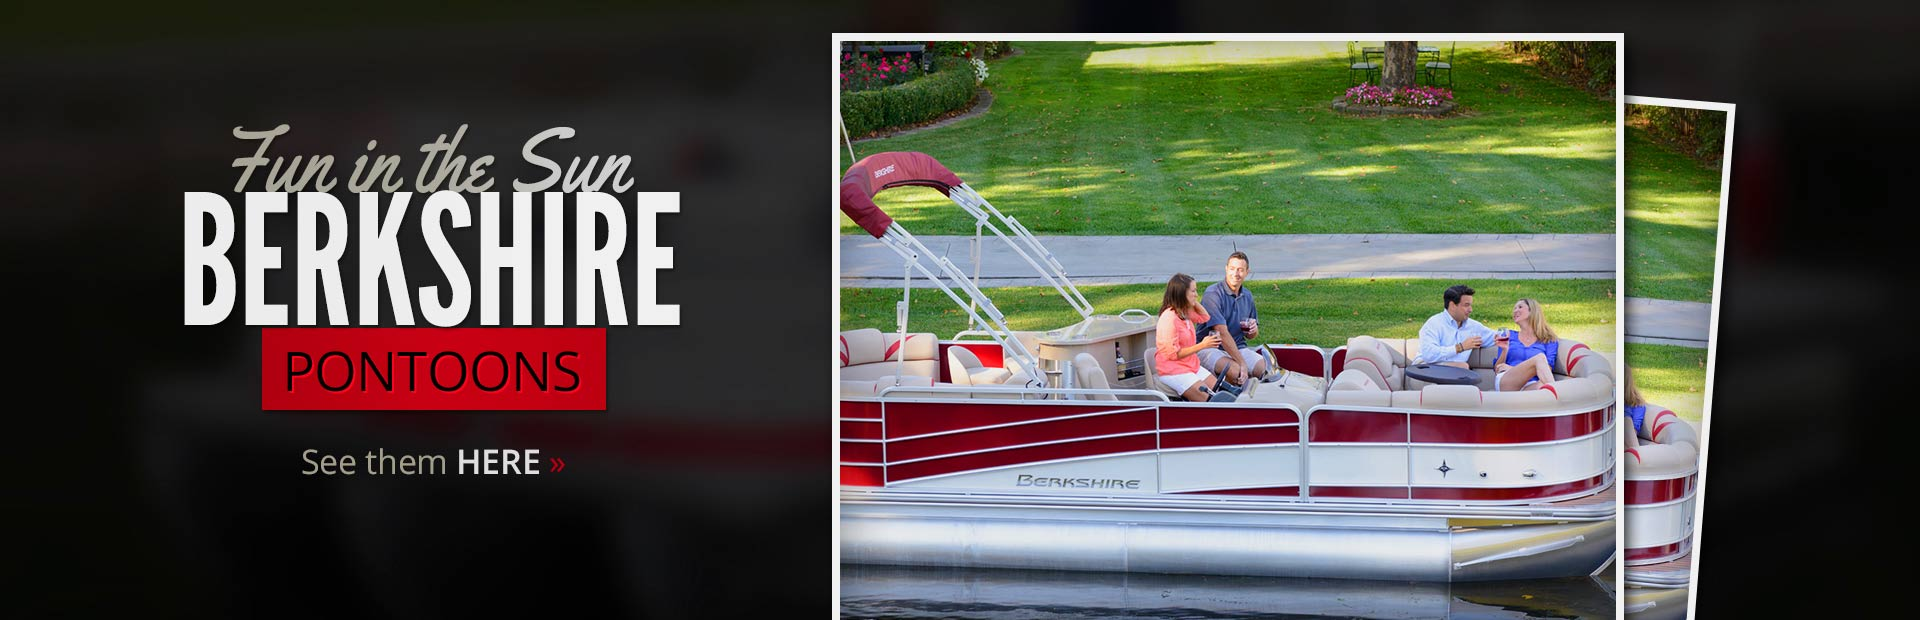 Berkshire Pontoons: Click here to view the models.